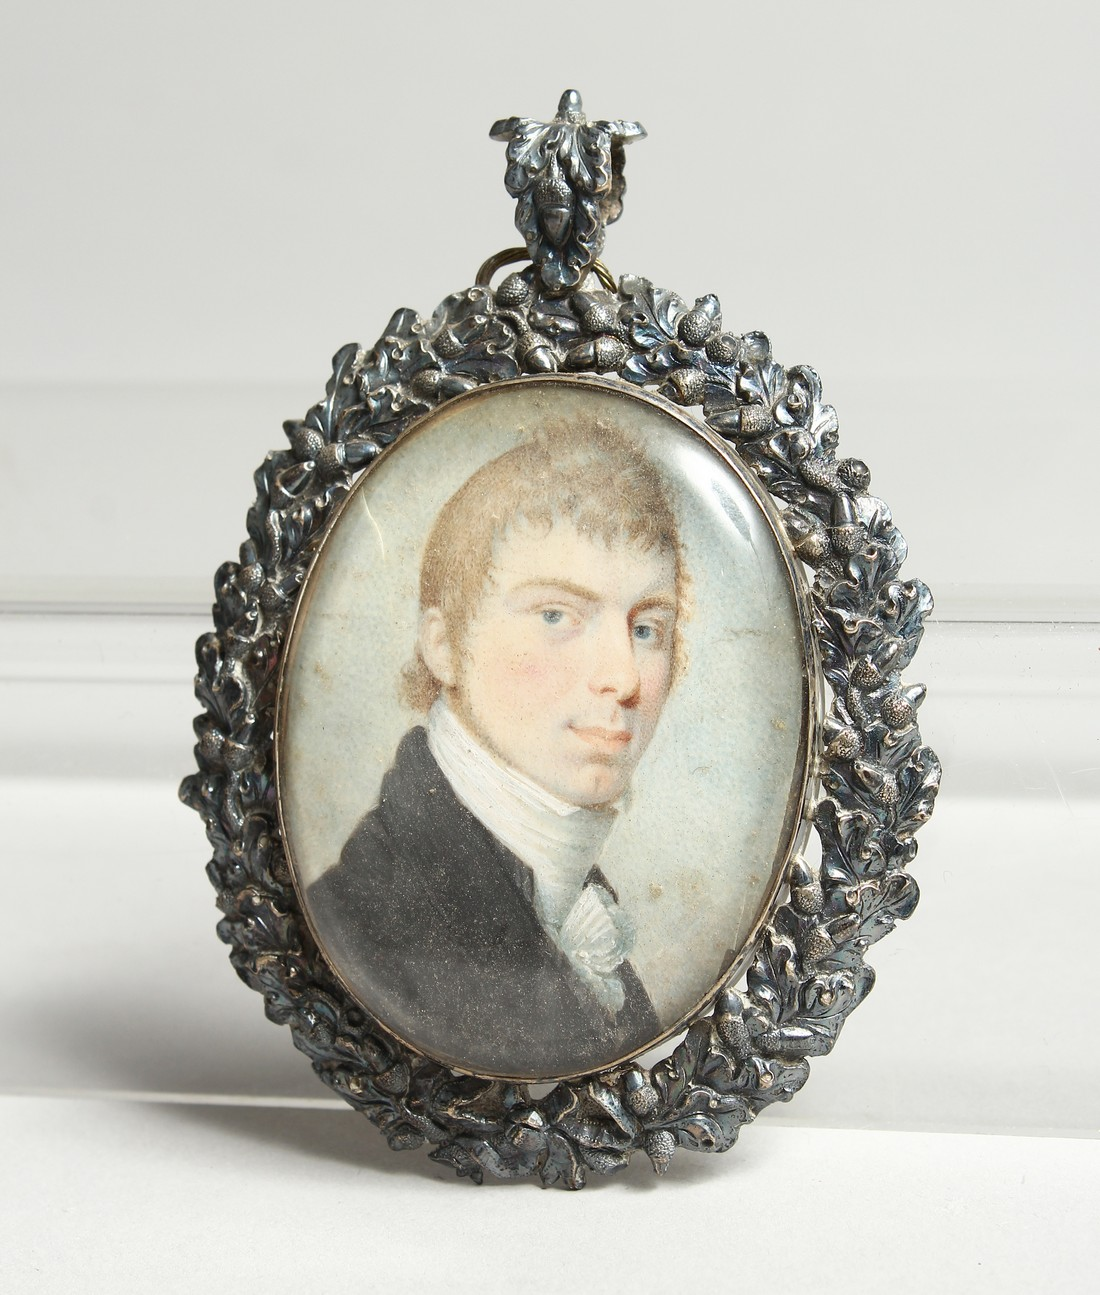 A GEORGIAN OVAL MINIATURE OF A YOUNG MAN, in a silver frame. 2.5ins x 2ins.